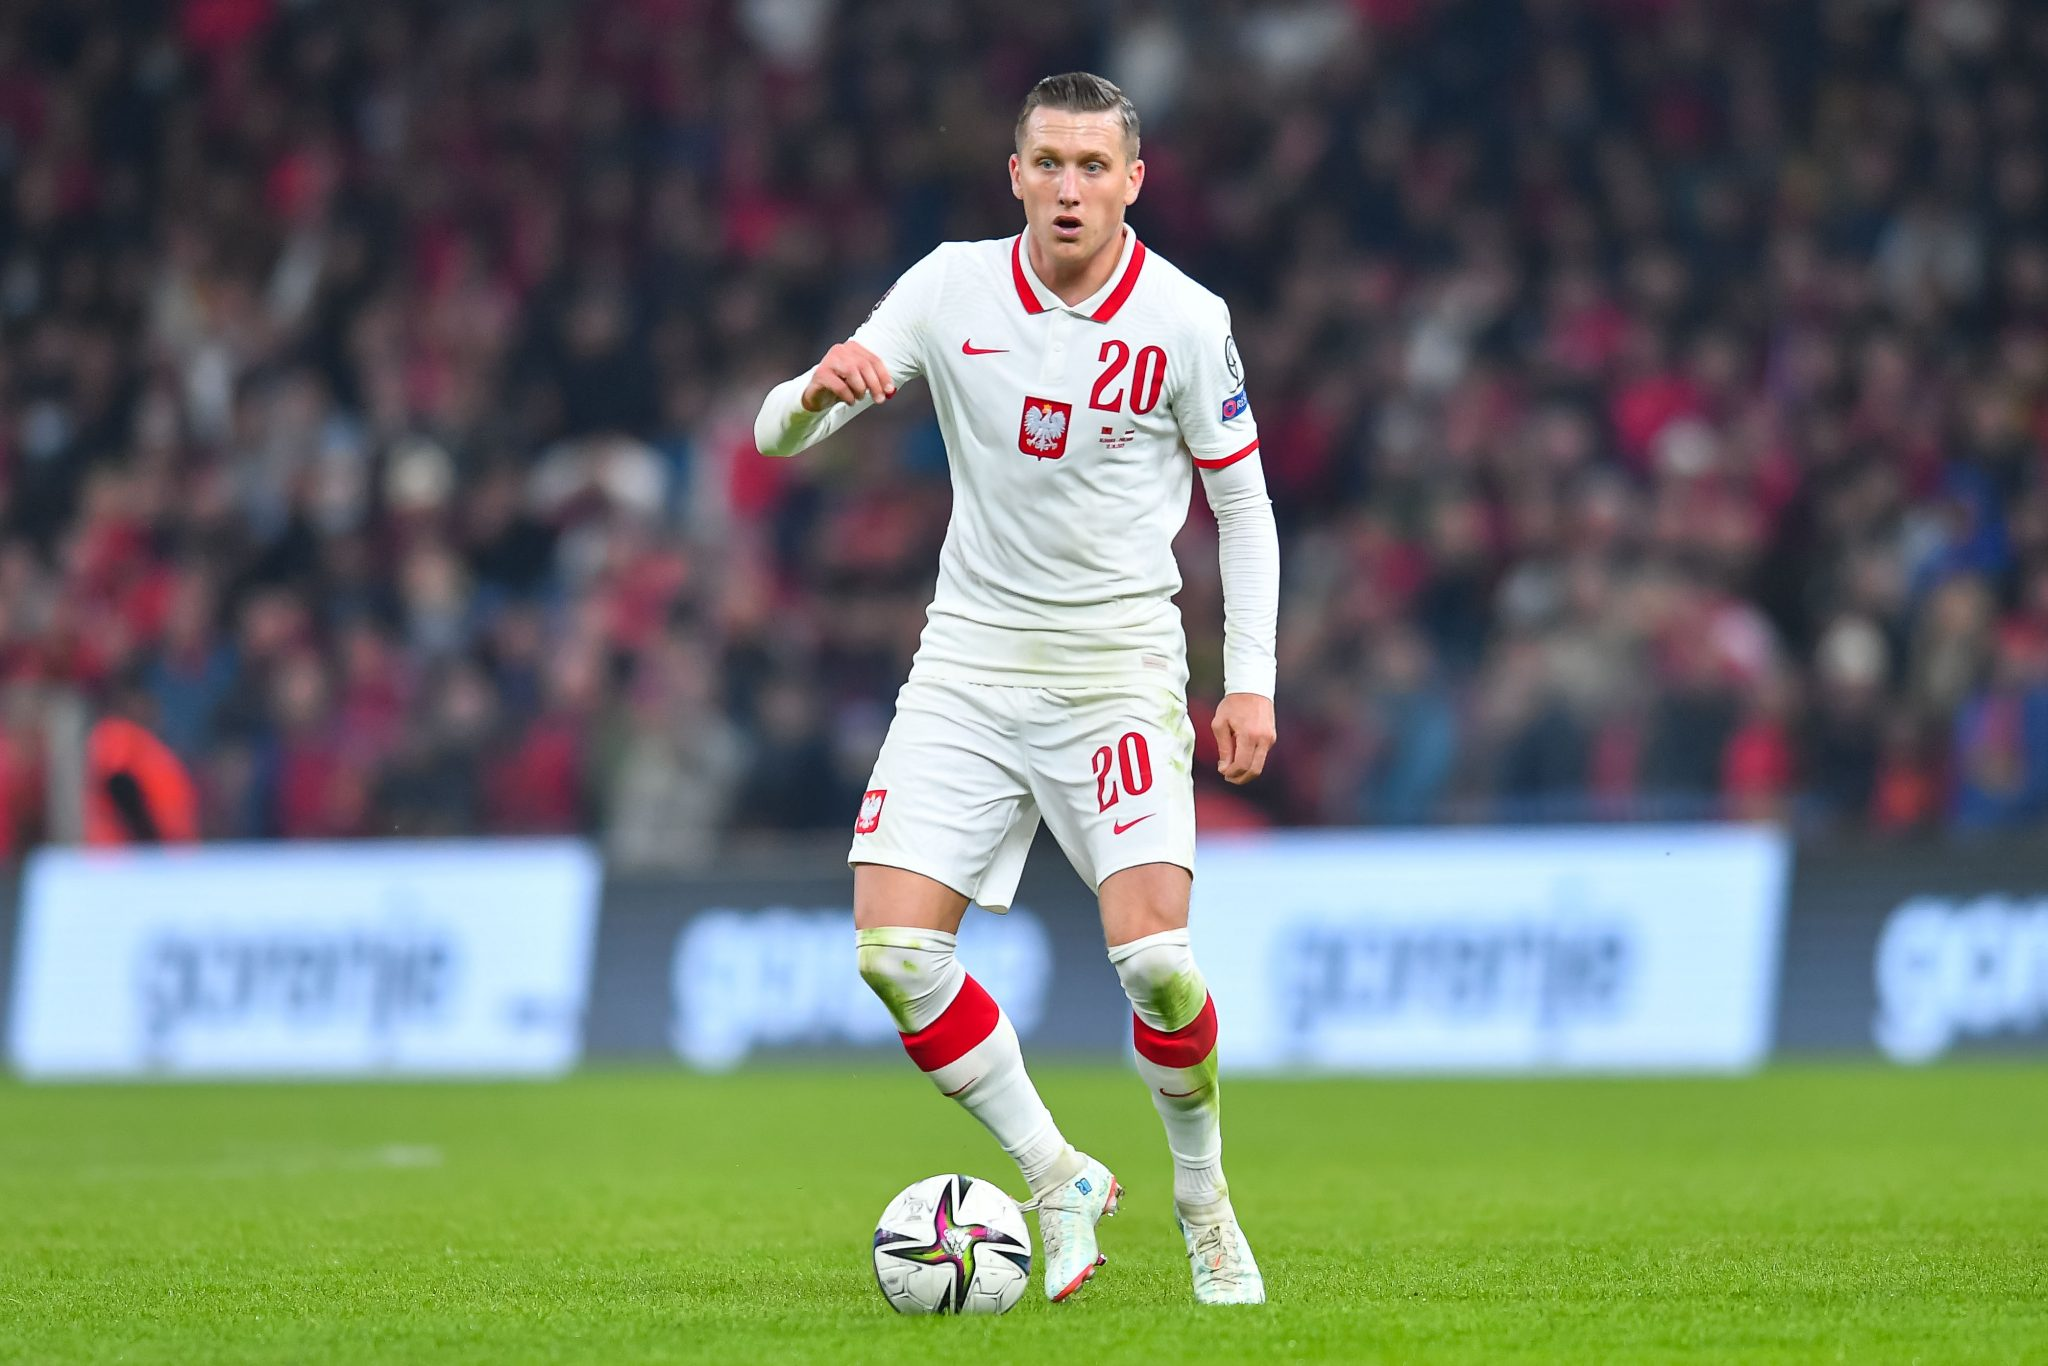 TIRANA, ALBANIA - OCTOBER 12: Piotr Zielinski of Poland in action during the 2022 FIFA World Cup Qualifier match between Albania and Poland at  on October 12, 2021 in Tirana, Albania. (Photo by PressFocus/MB Media/Getty Images)